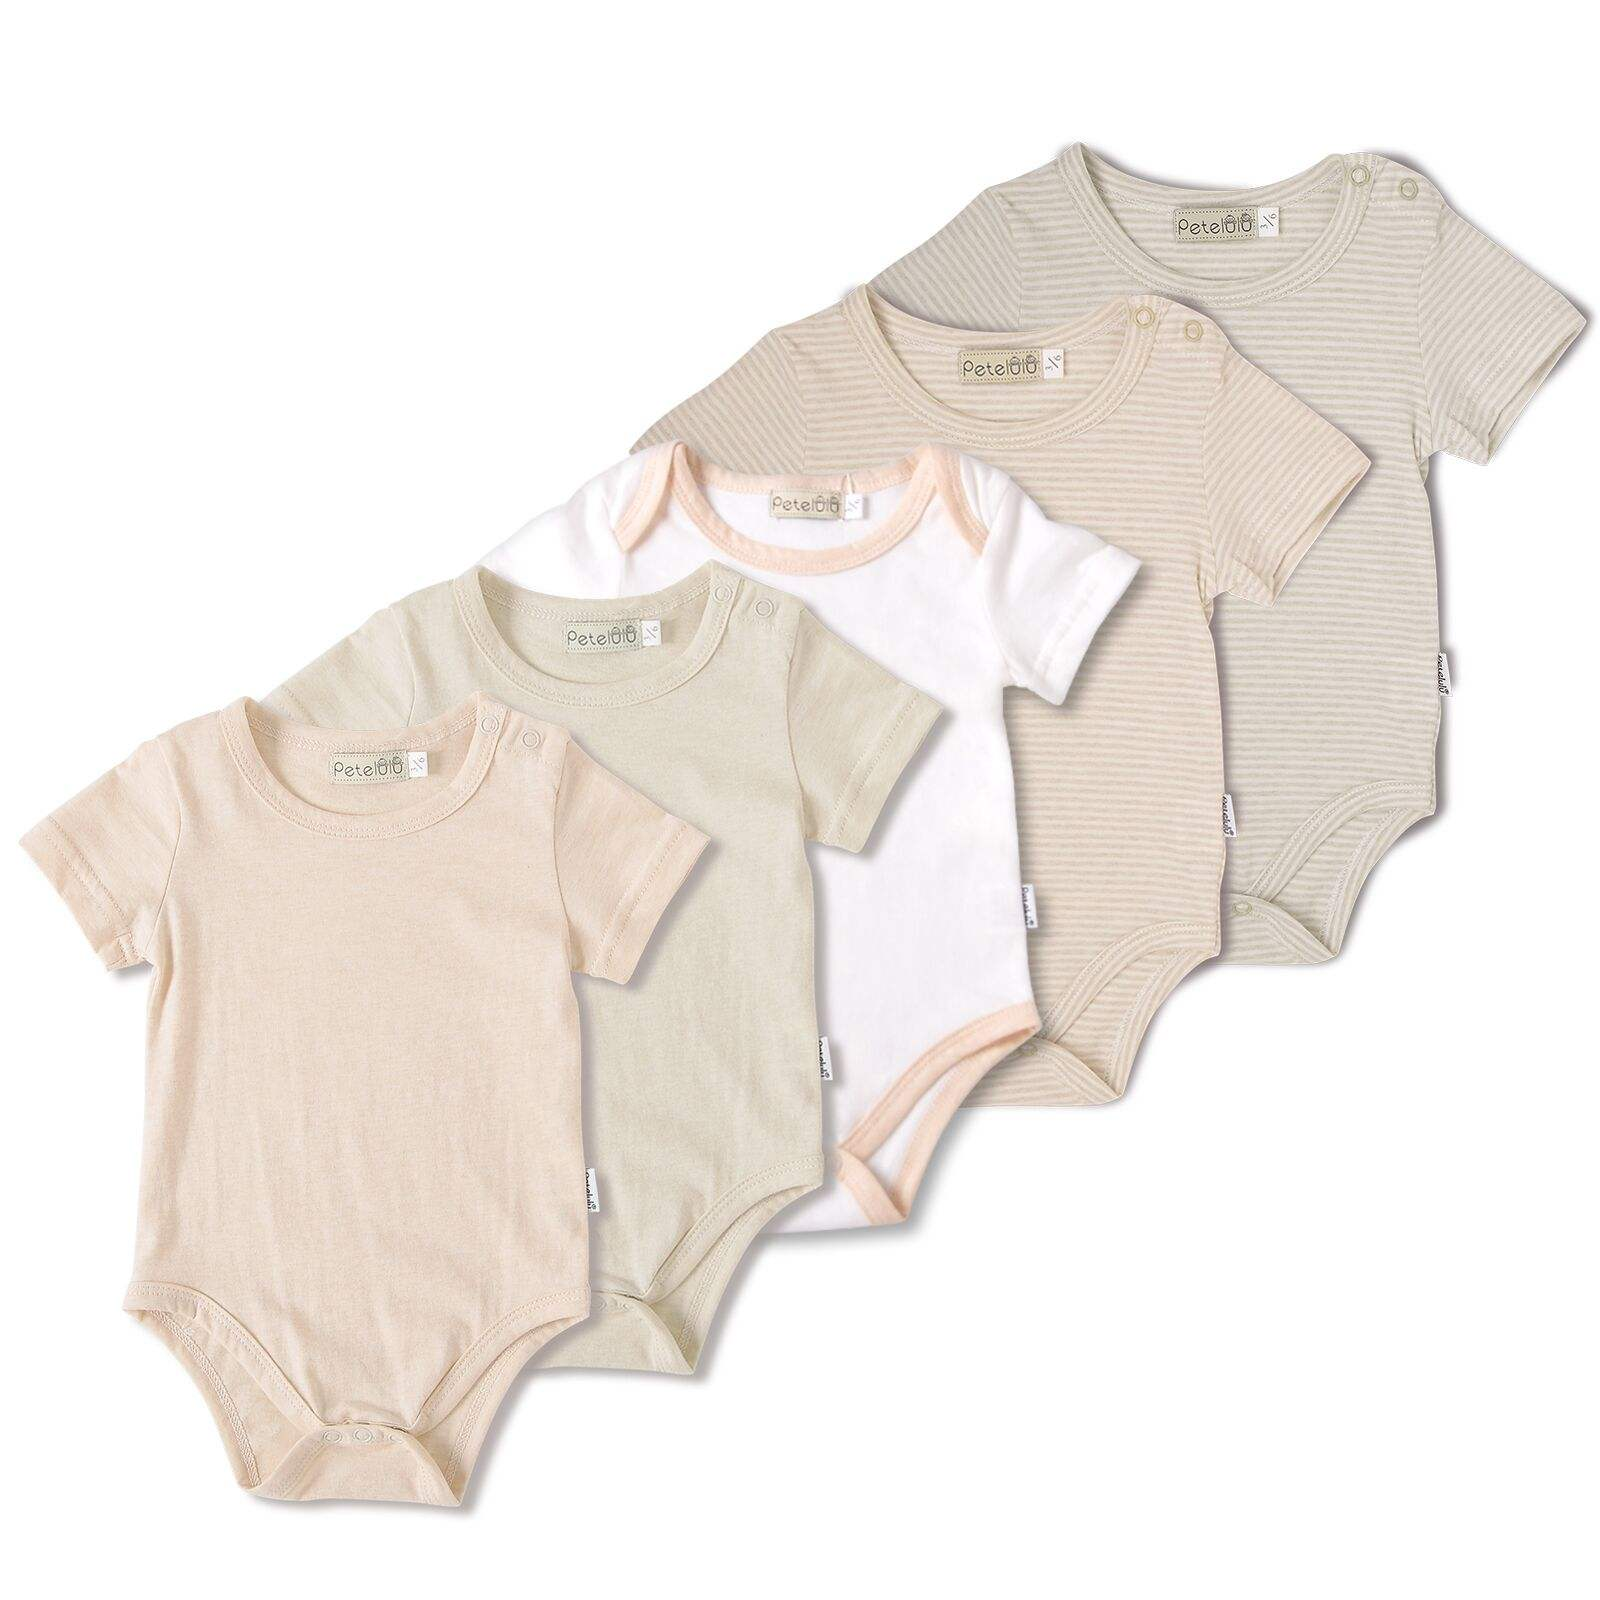 Good Sell 100% Natural Cotton Plain Cute Organic Cotton Baby Romper